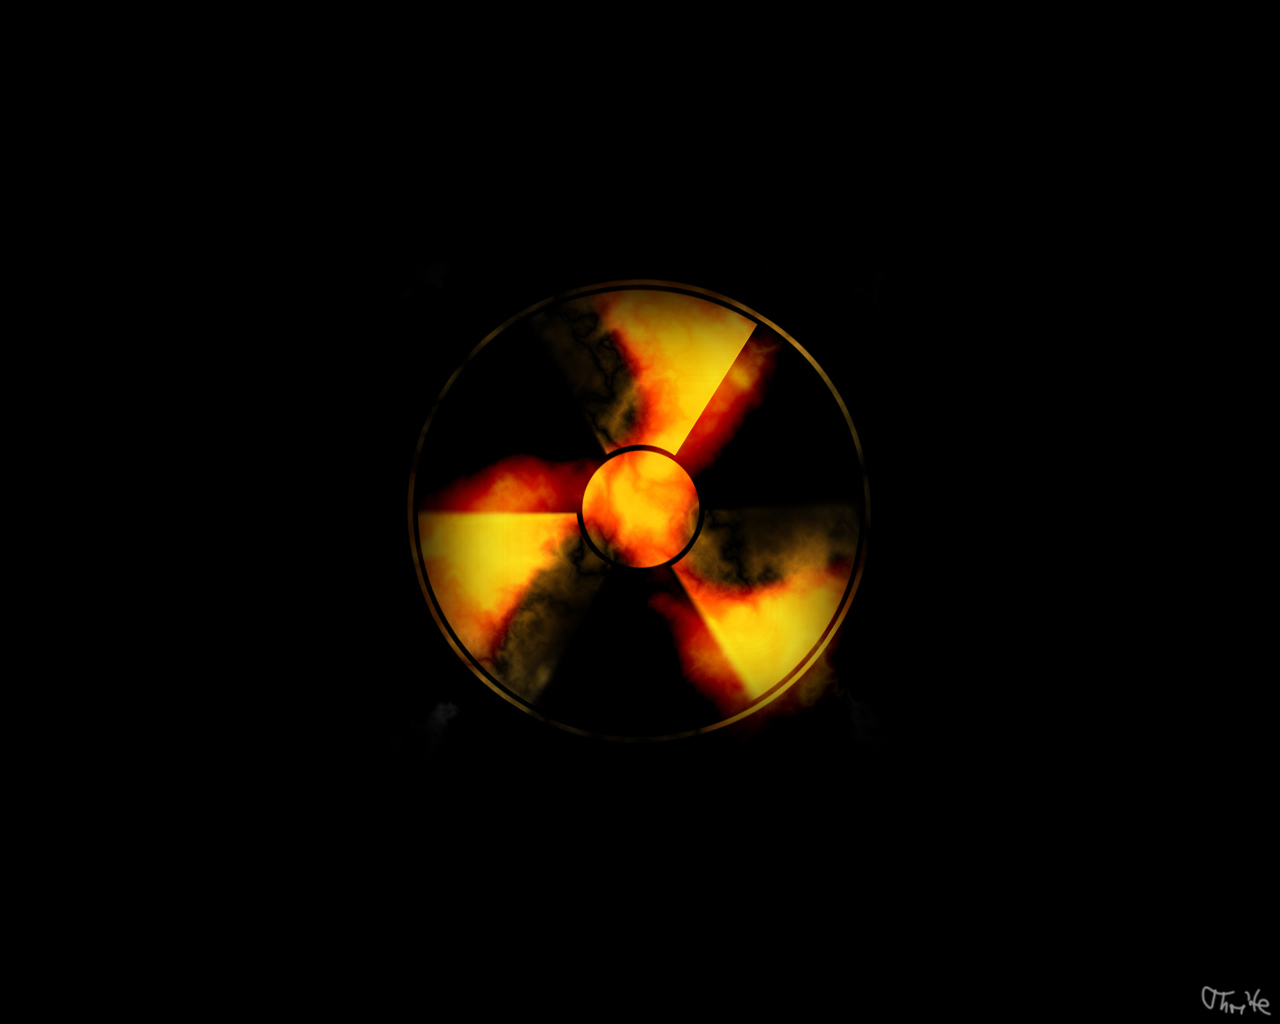 radioactive radiation symbol nuke